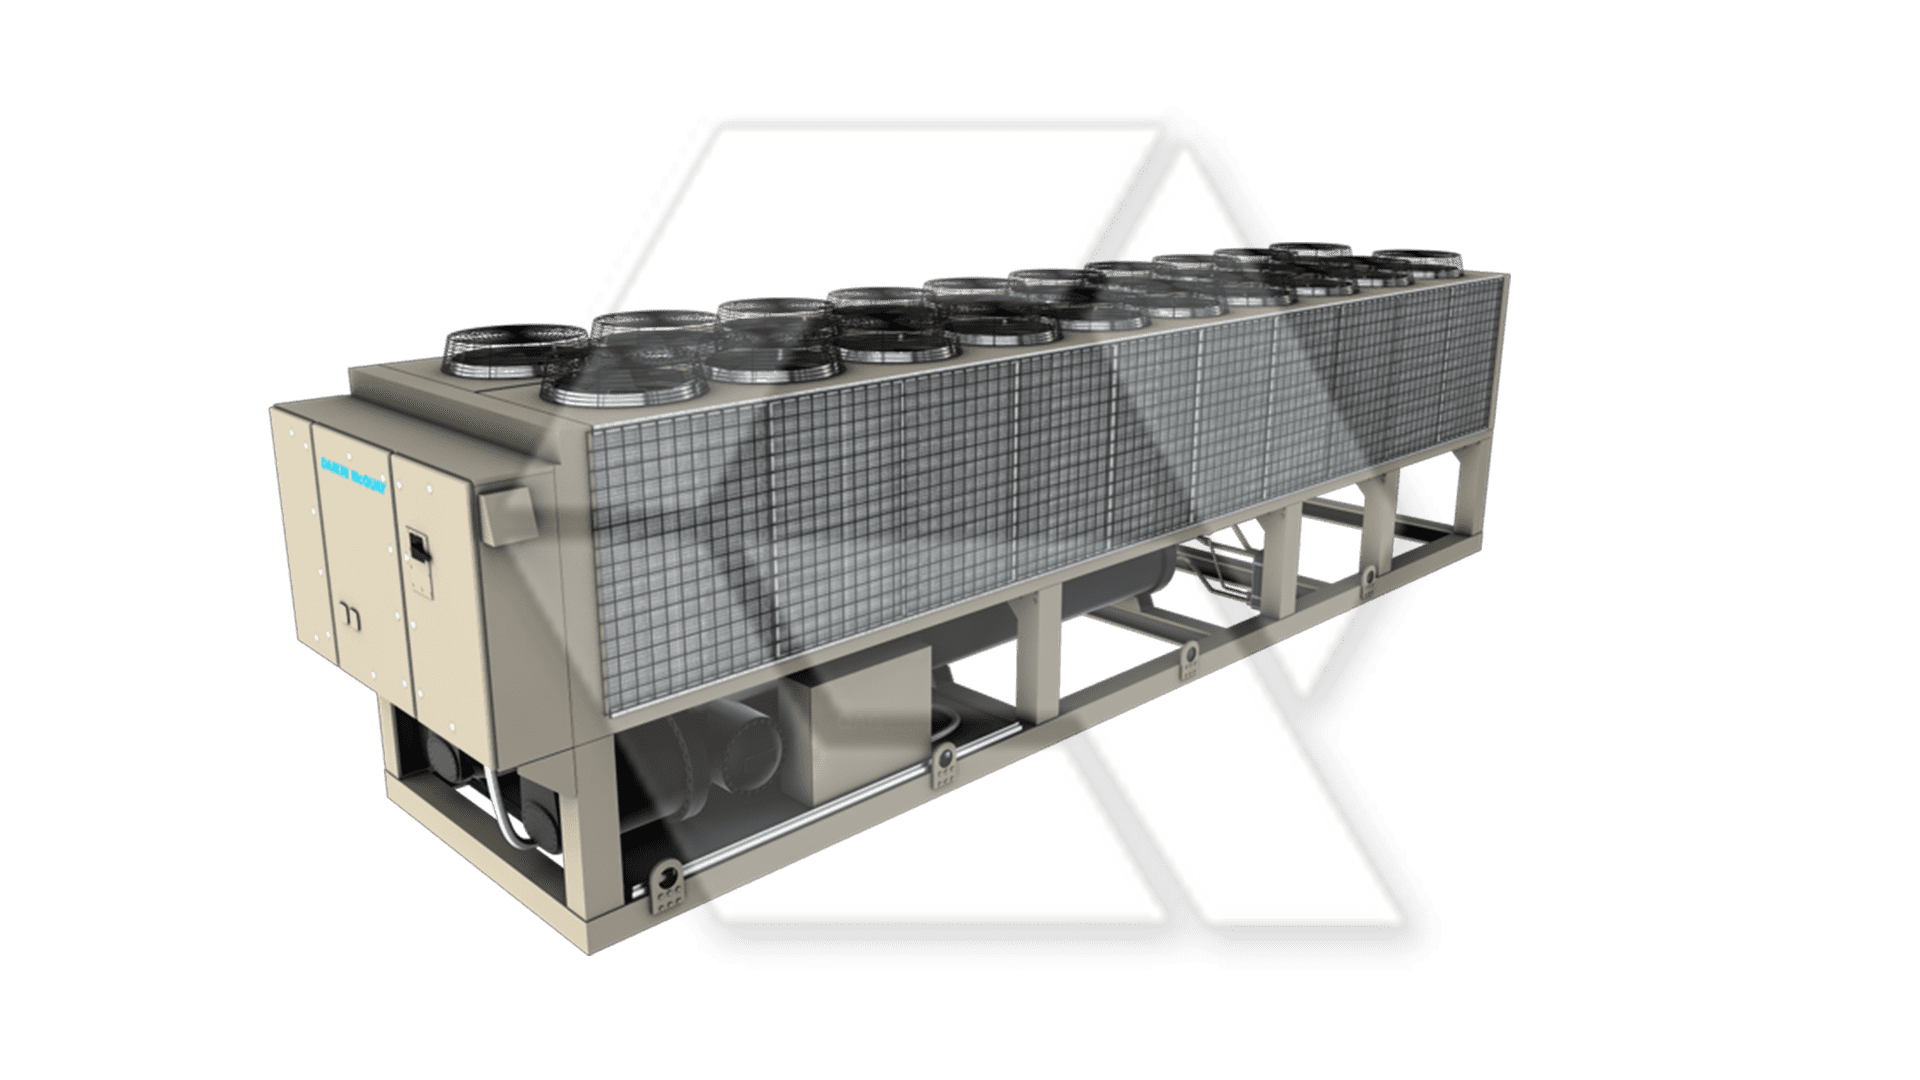 McQuay Air-Cooled Chiller